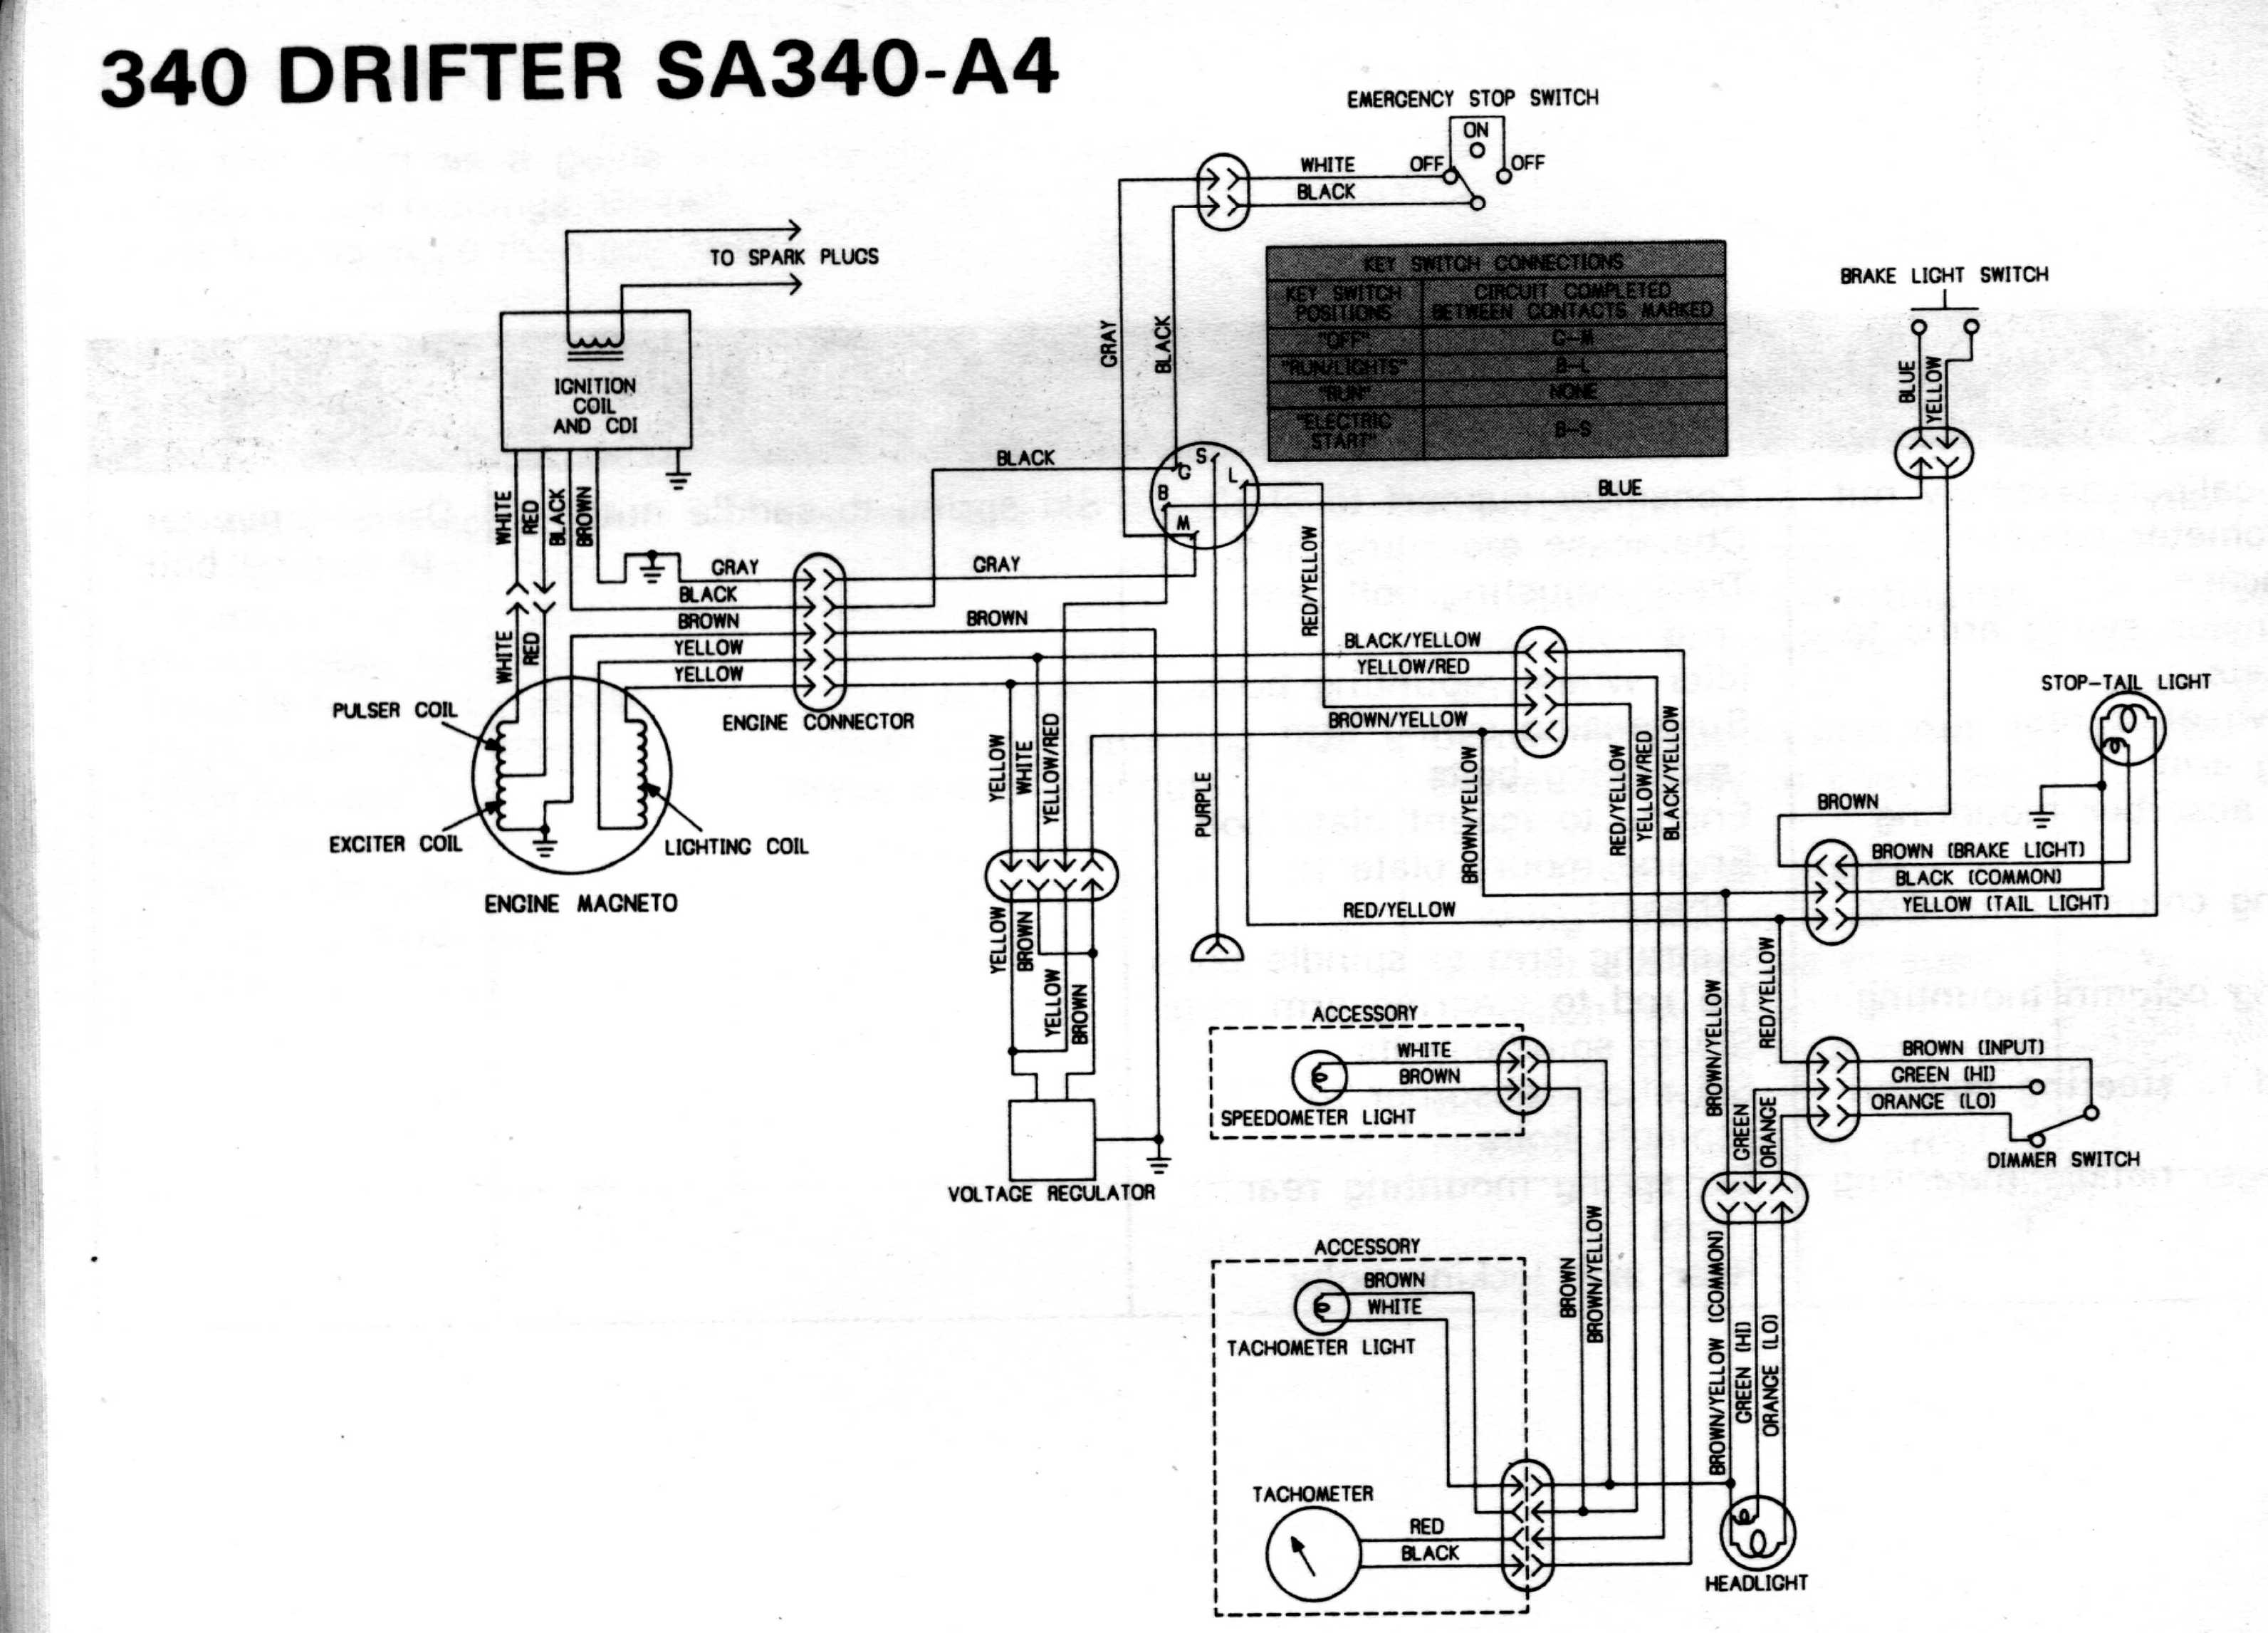 Rupp Nitro Wiring Diagram And Schematics 1977 Honda Cb750 77 1975